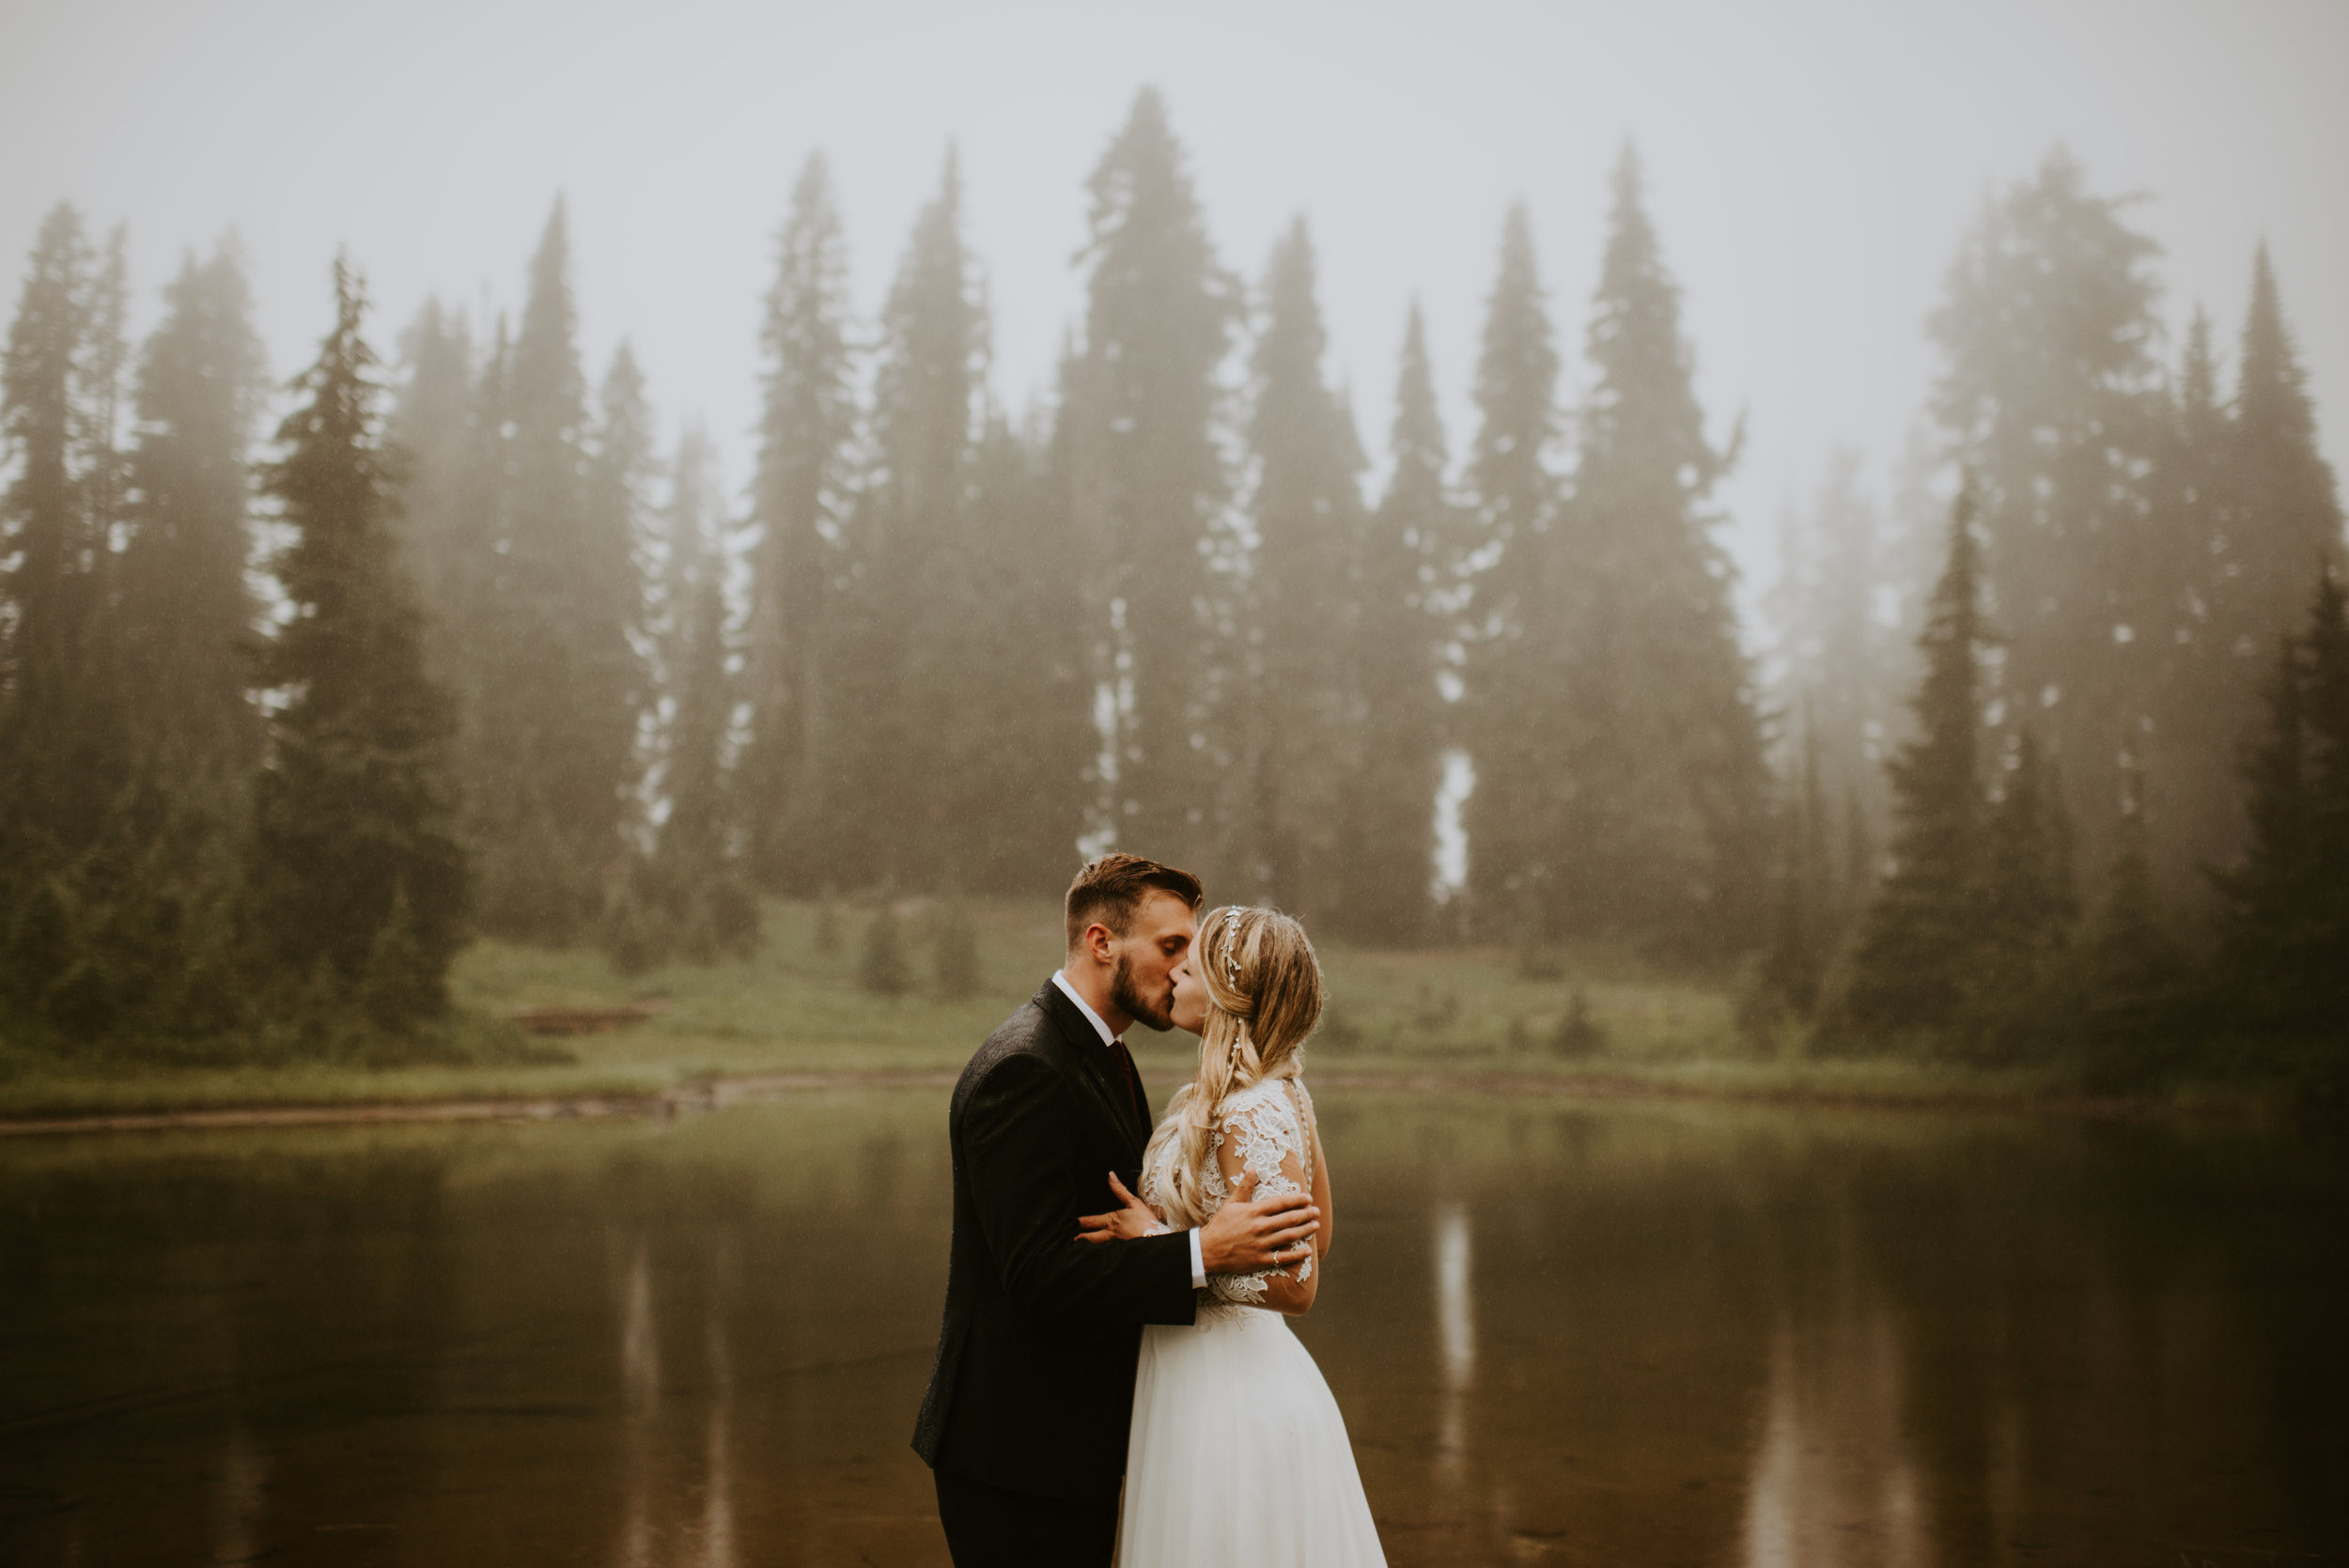 Cameo + Dawson - Day After Wedding Portrait Session - Tipsoo Lake, Mt. Rainier, Washington - Kamra Fuller Photography-76.JPG